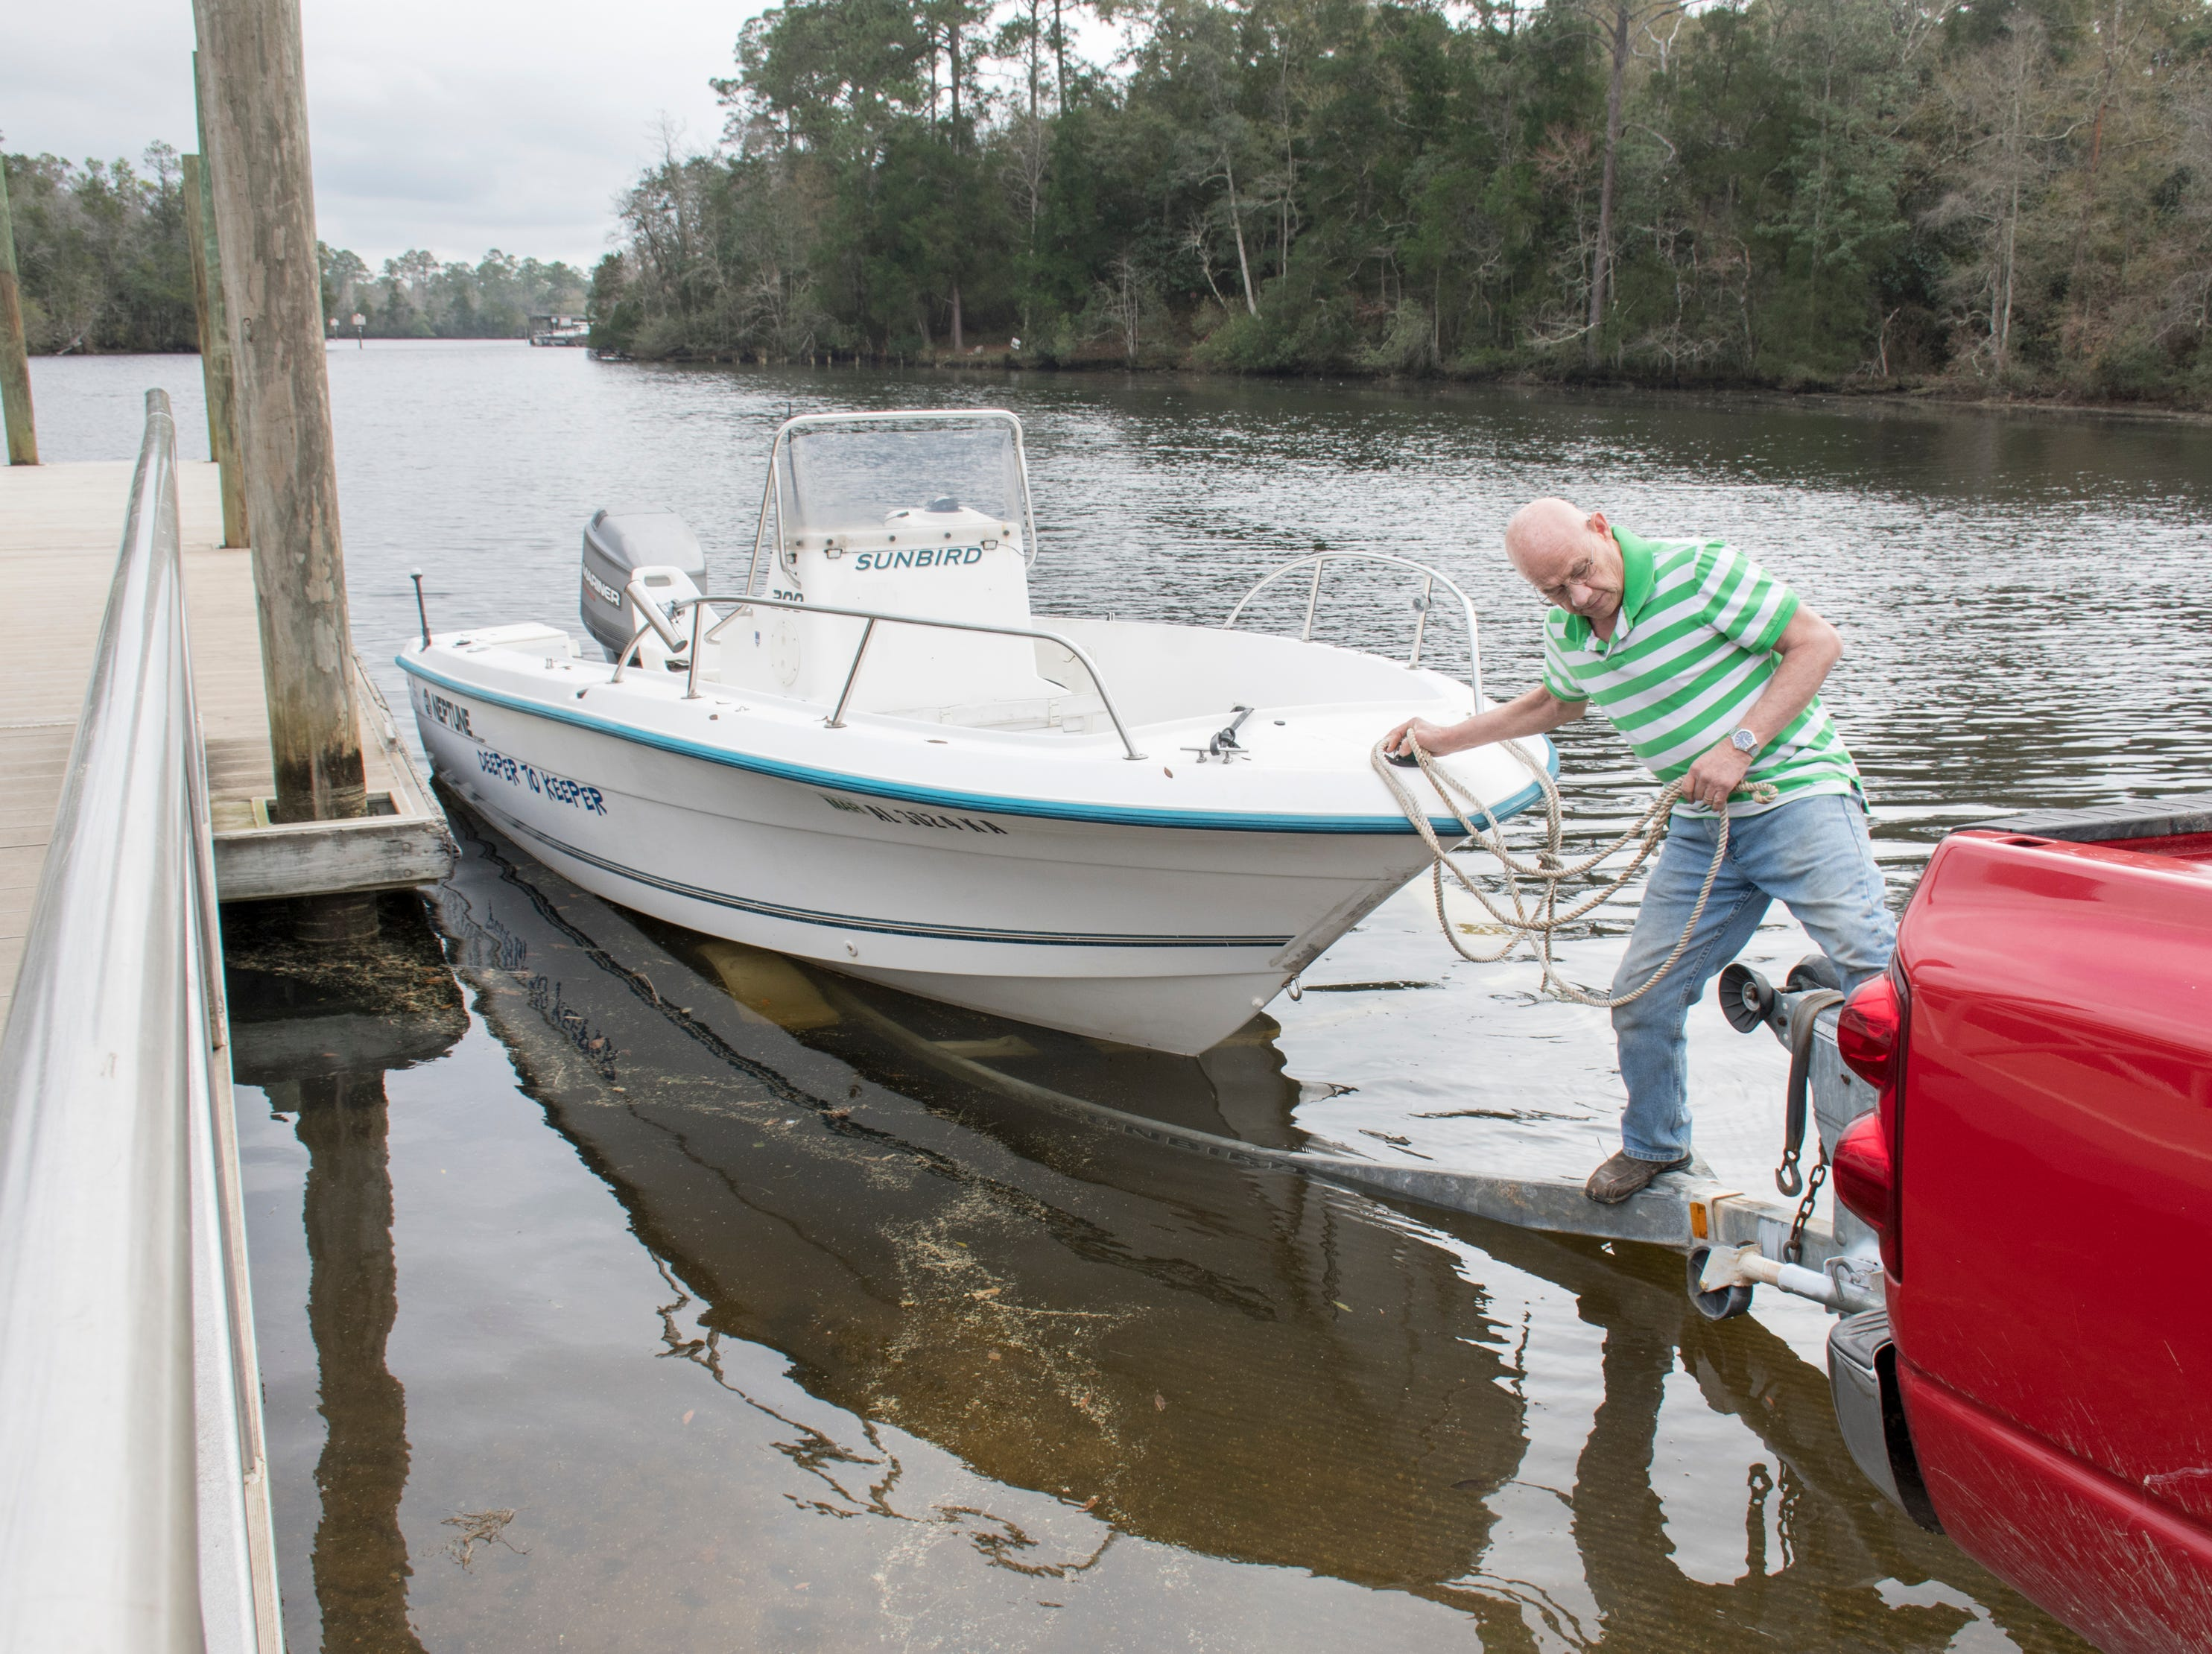 Michael Pickard, of Milton, gets set to launch his boat at Carpenters Park near the Milton Marina in Milton on Wednesday, February 6, 2019.